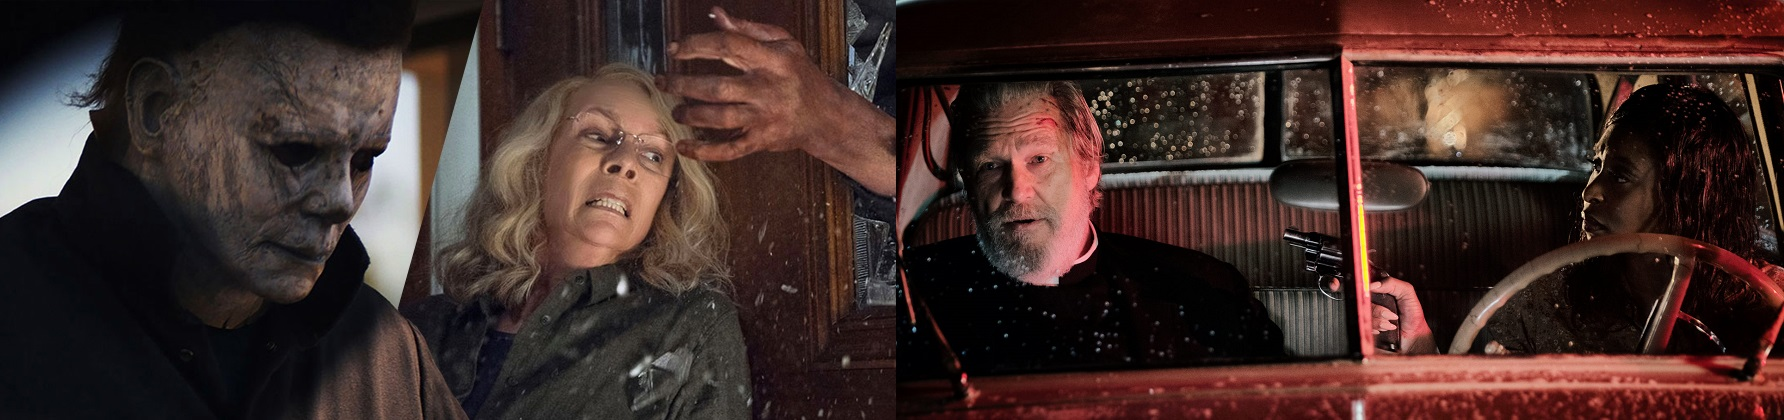 Halloween (2018) David Gordon Green & Bad Times at the El Royale (2018) Drew Goddard - Movie Review - Image 2